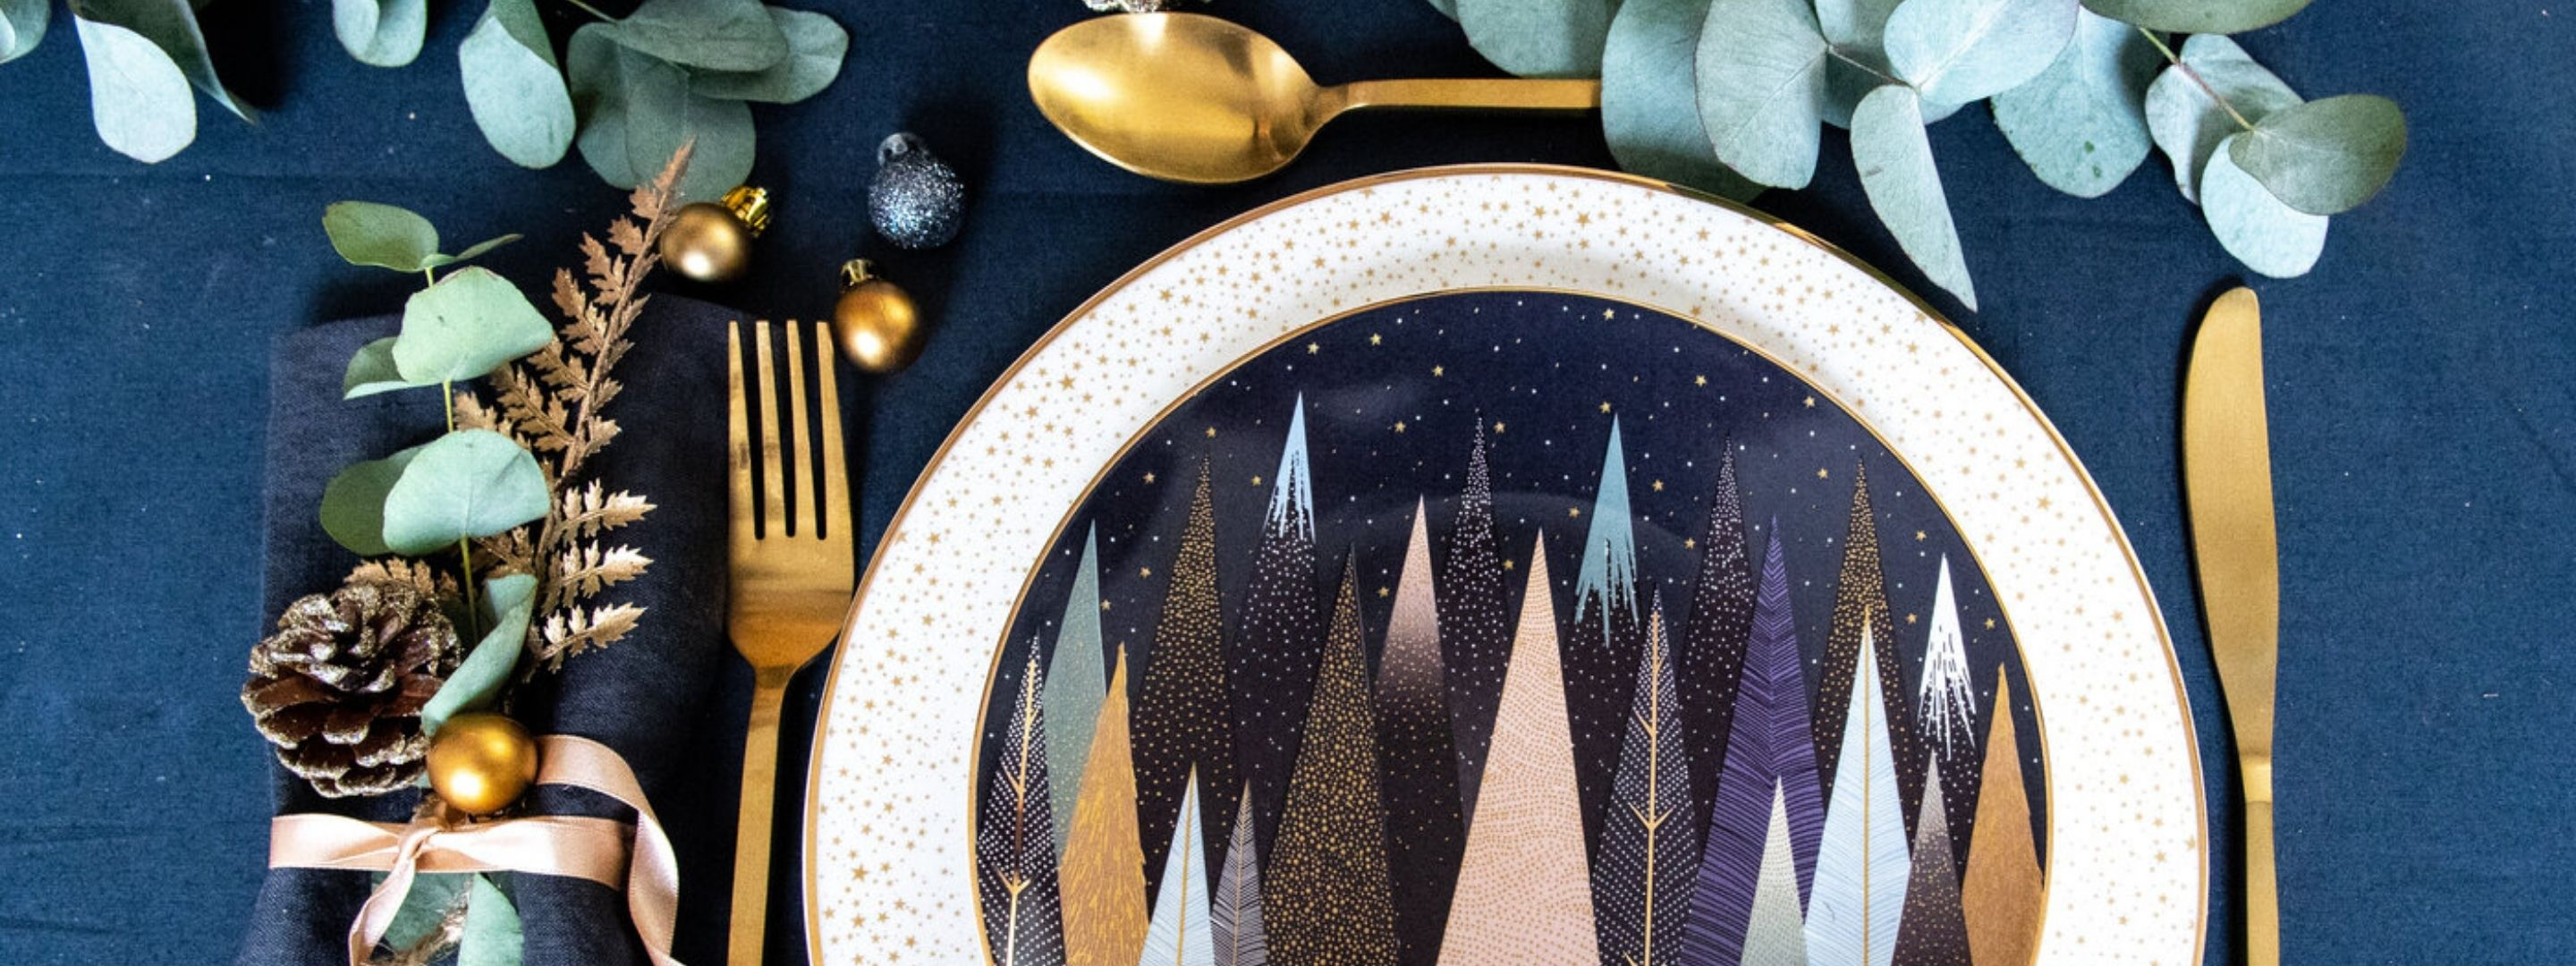 Sara Miller Frosted Pines Christmas Tableware